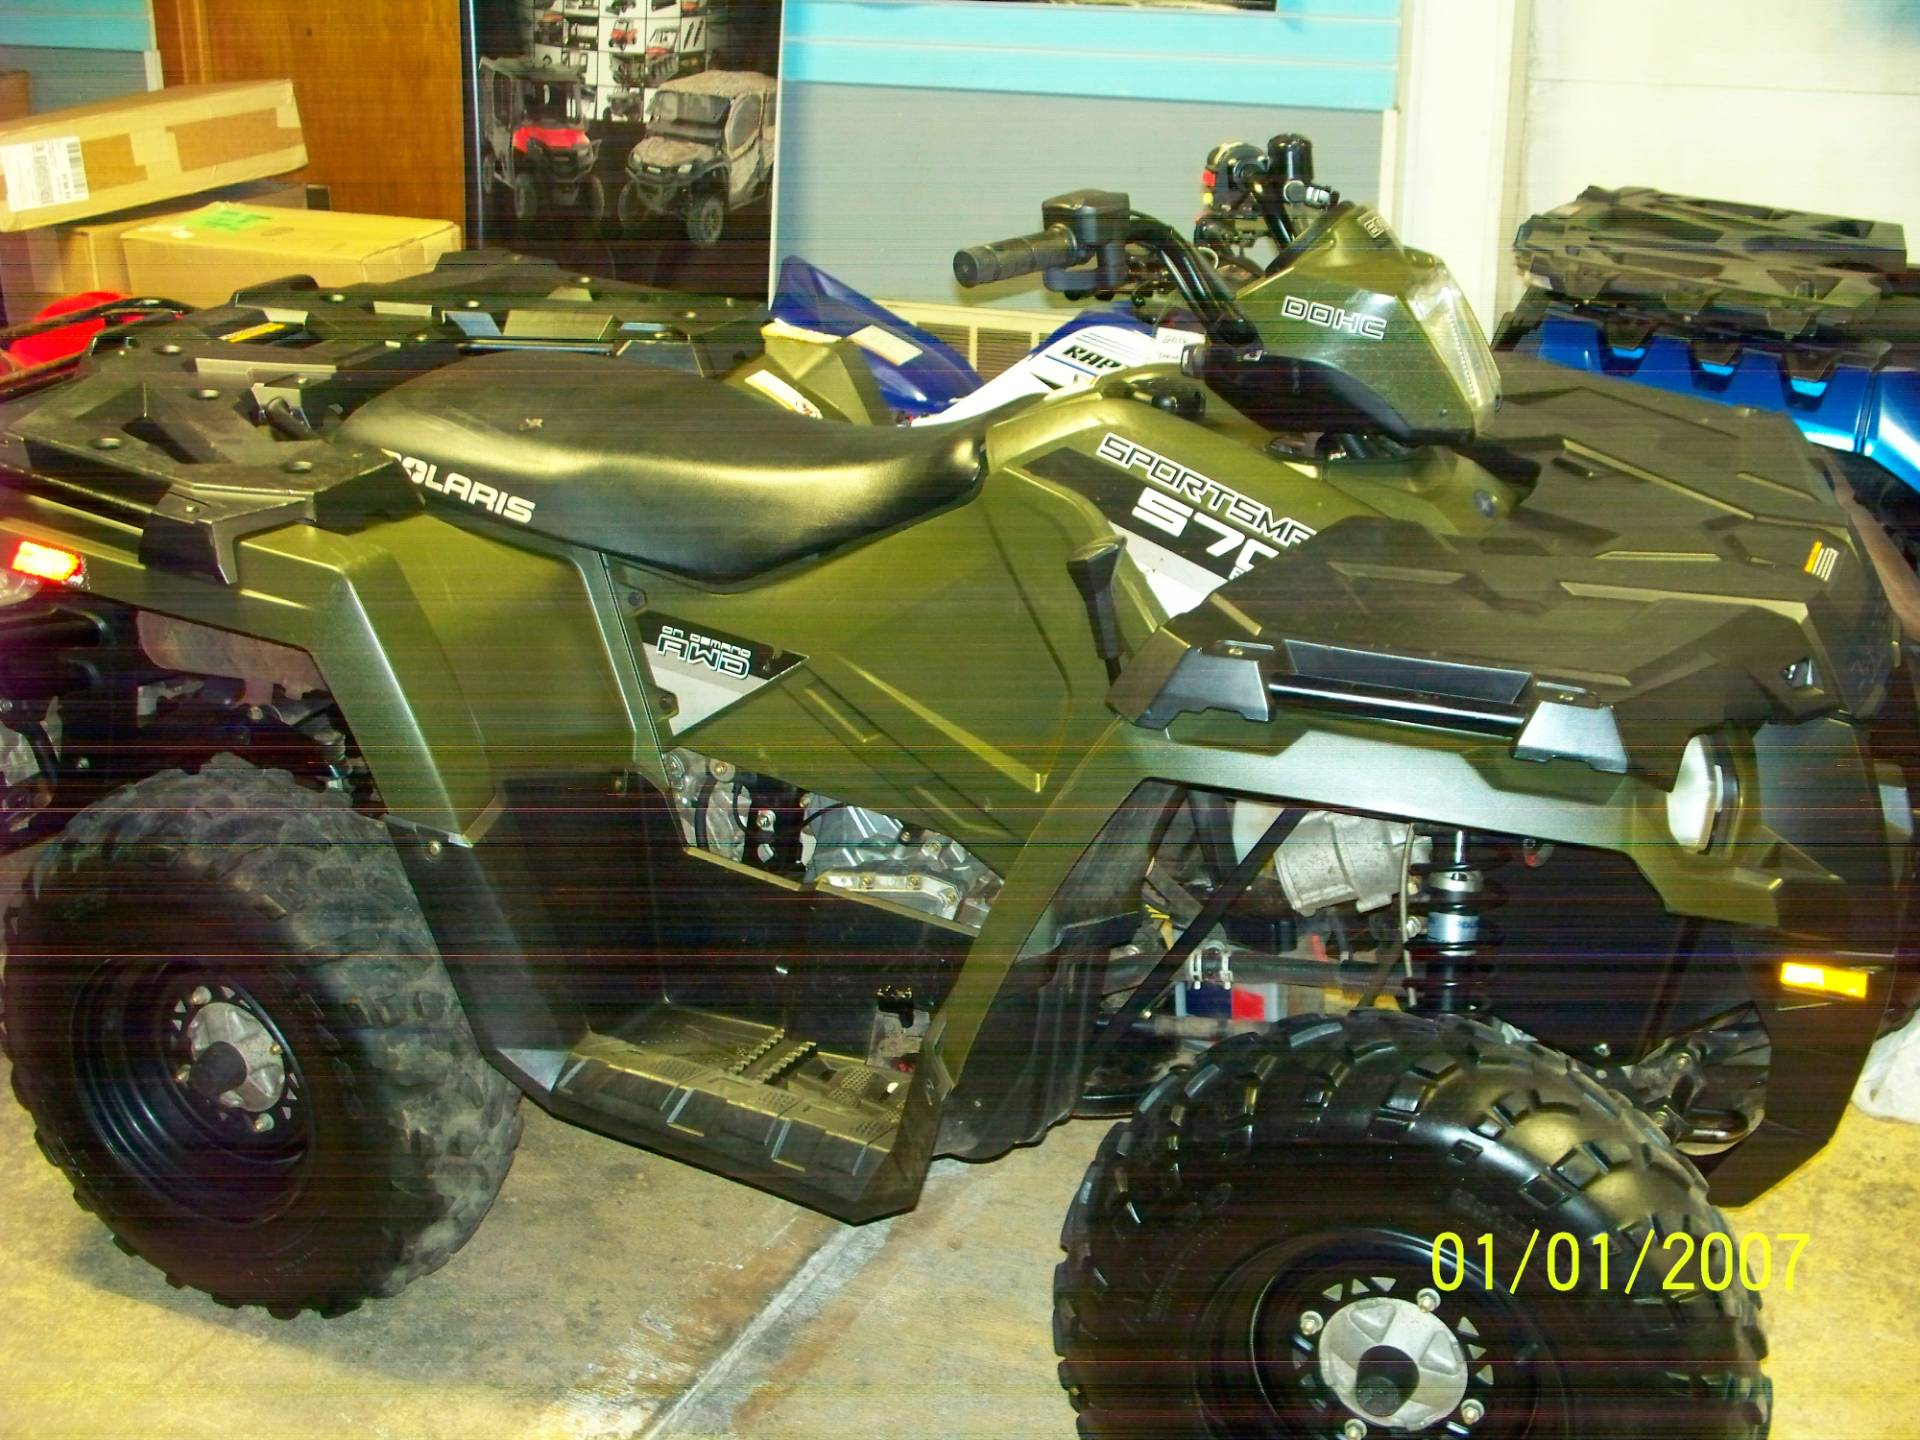 2015 Polaris Sportsman 570 in Sterling, Illinois - Photo 2